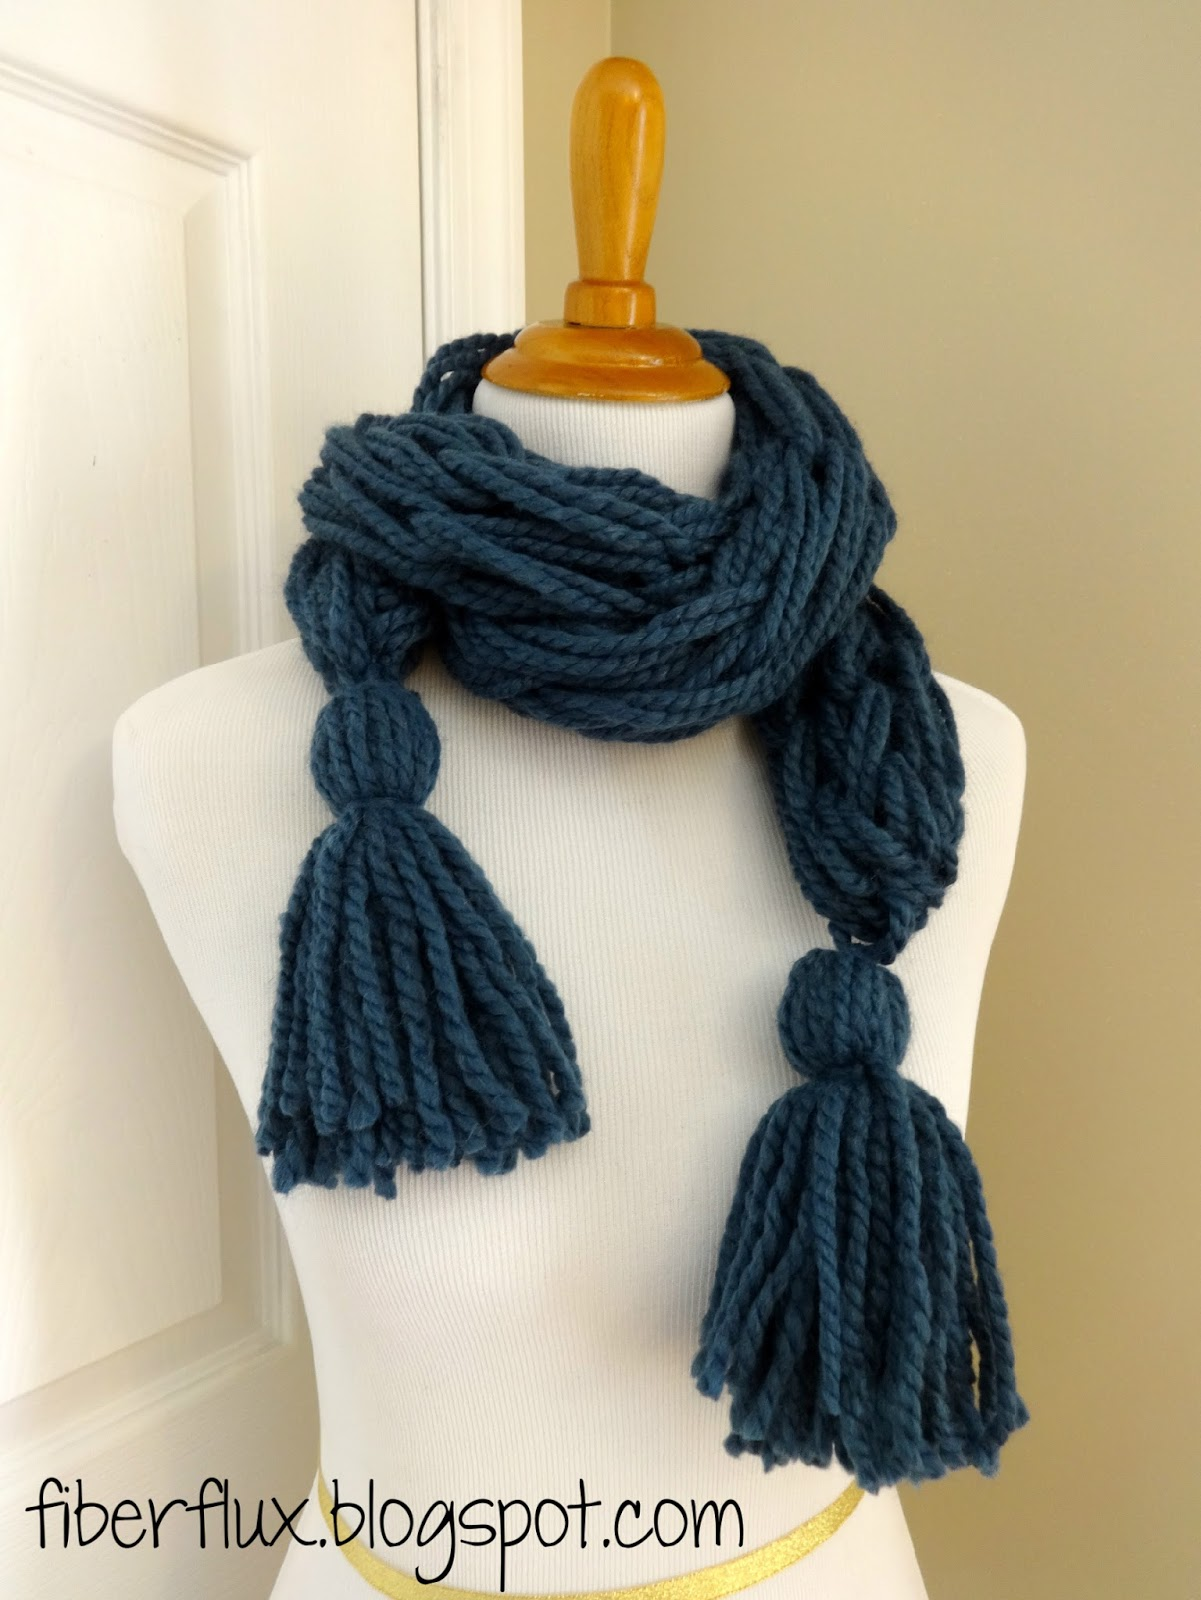 Fiber Flux: Free Knitting Pattern...Arm Knit Tassel Scarf!